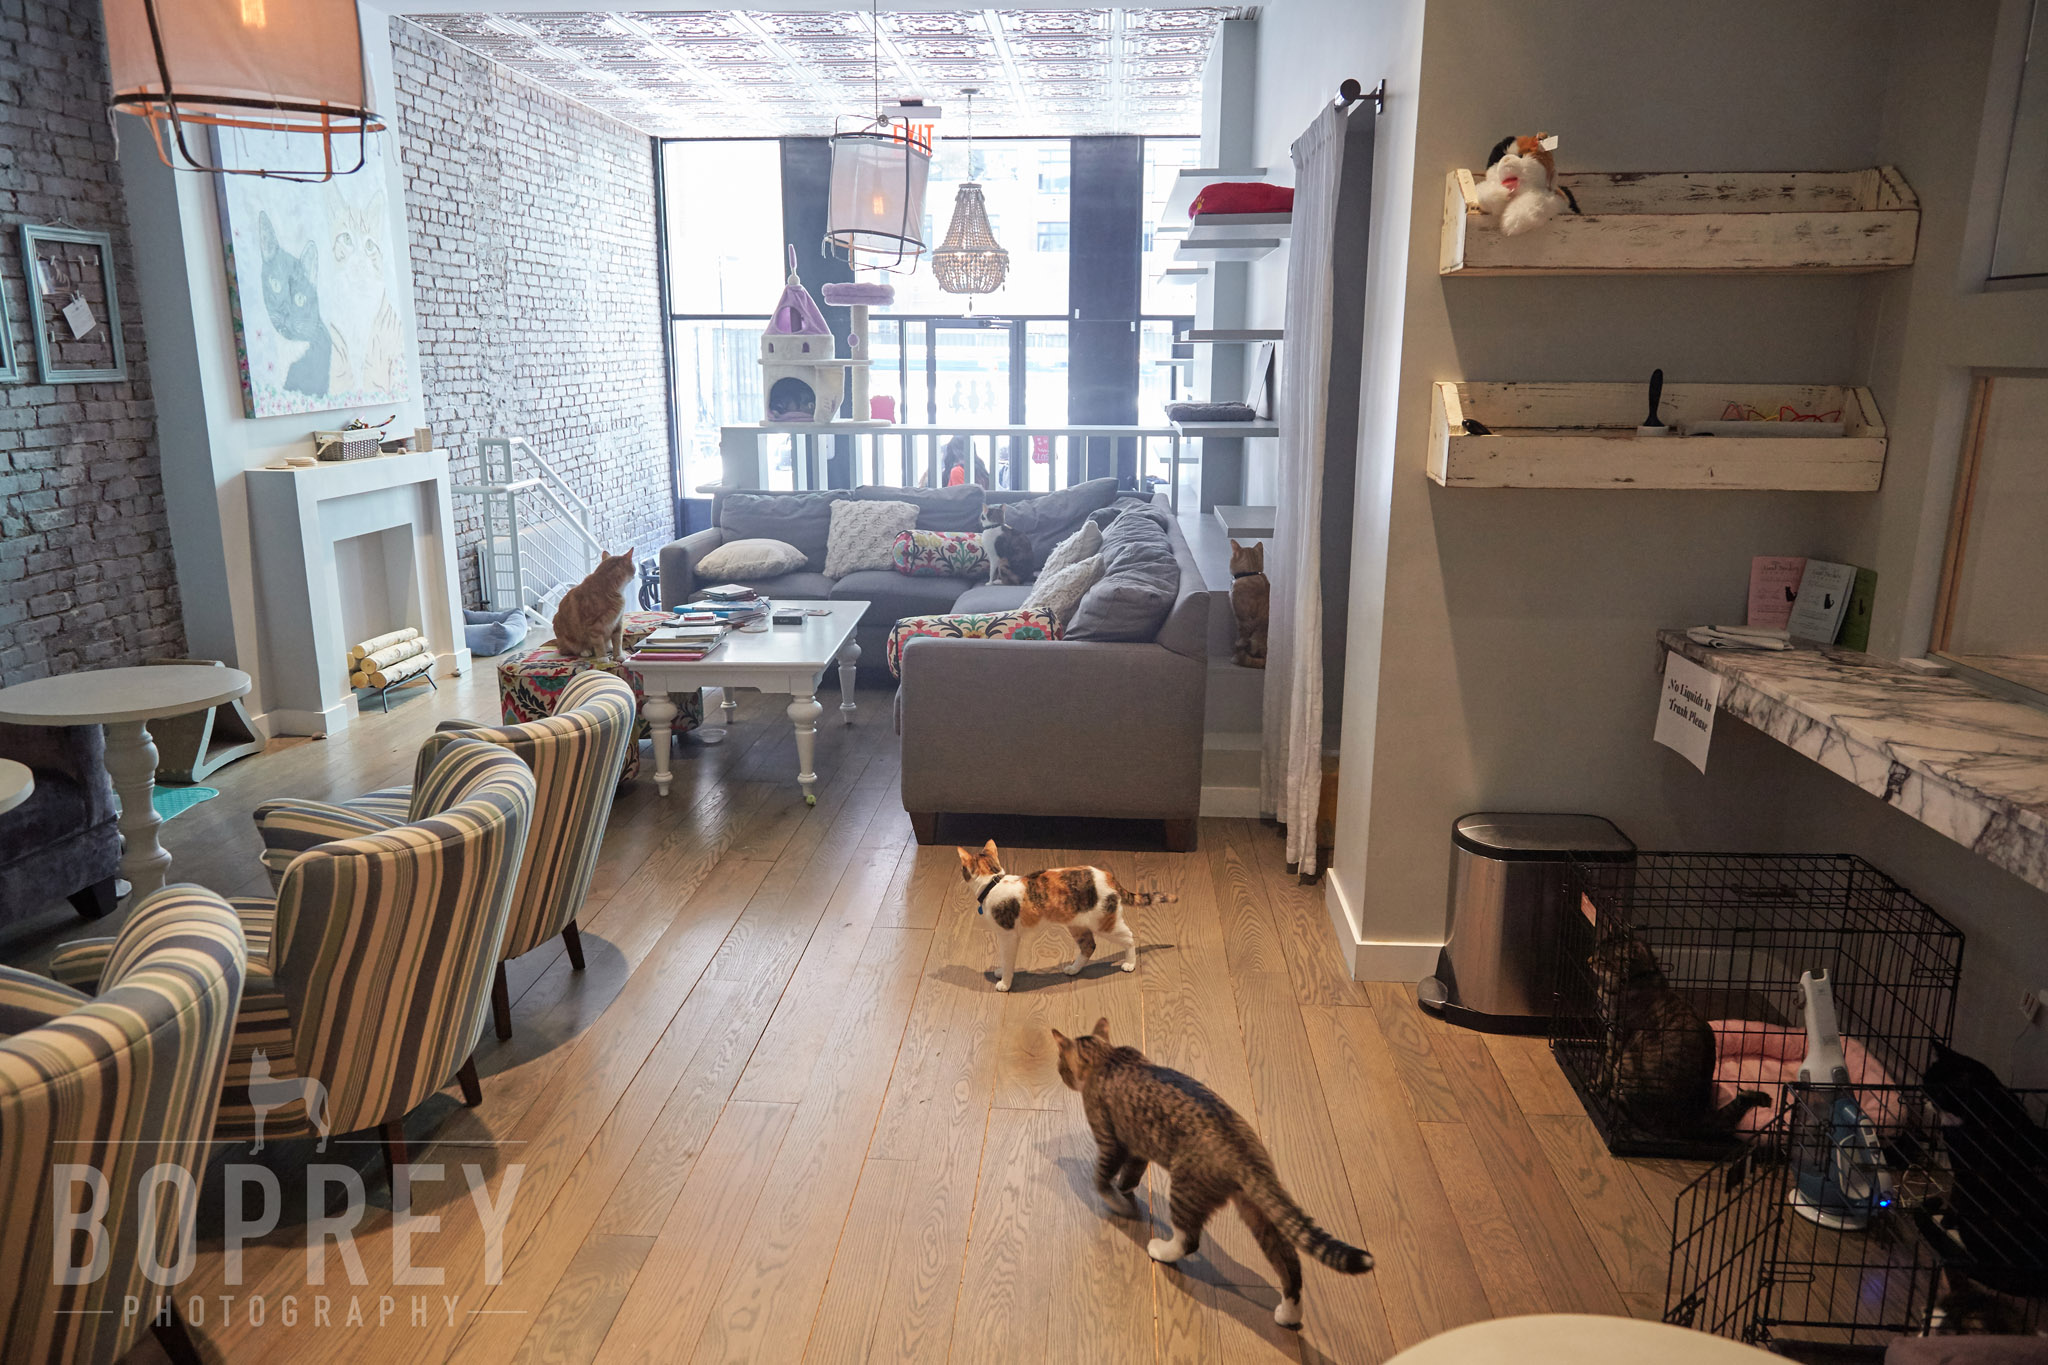 boprey-pet-photography-nyc-littlelions